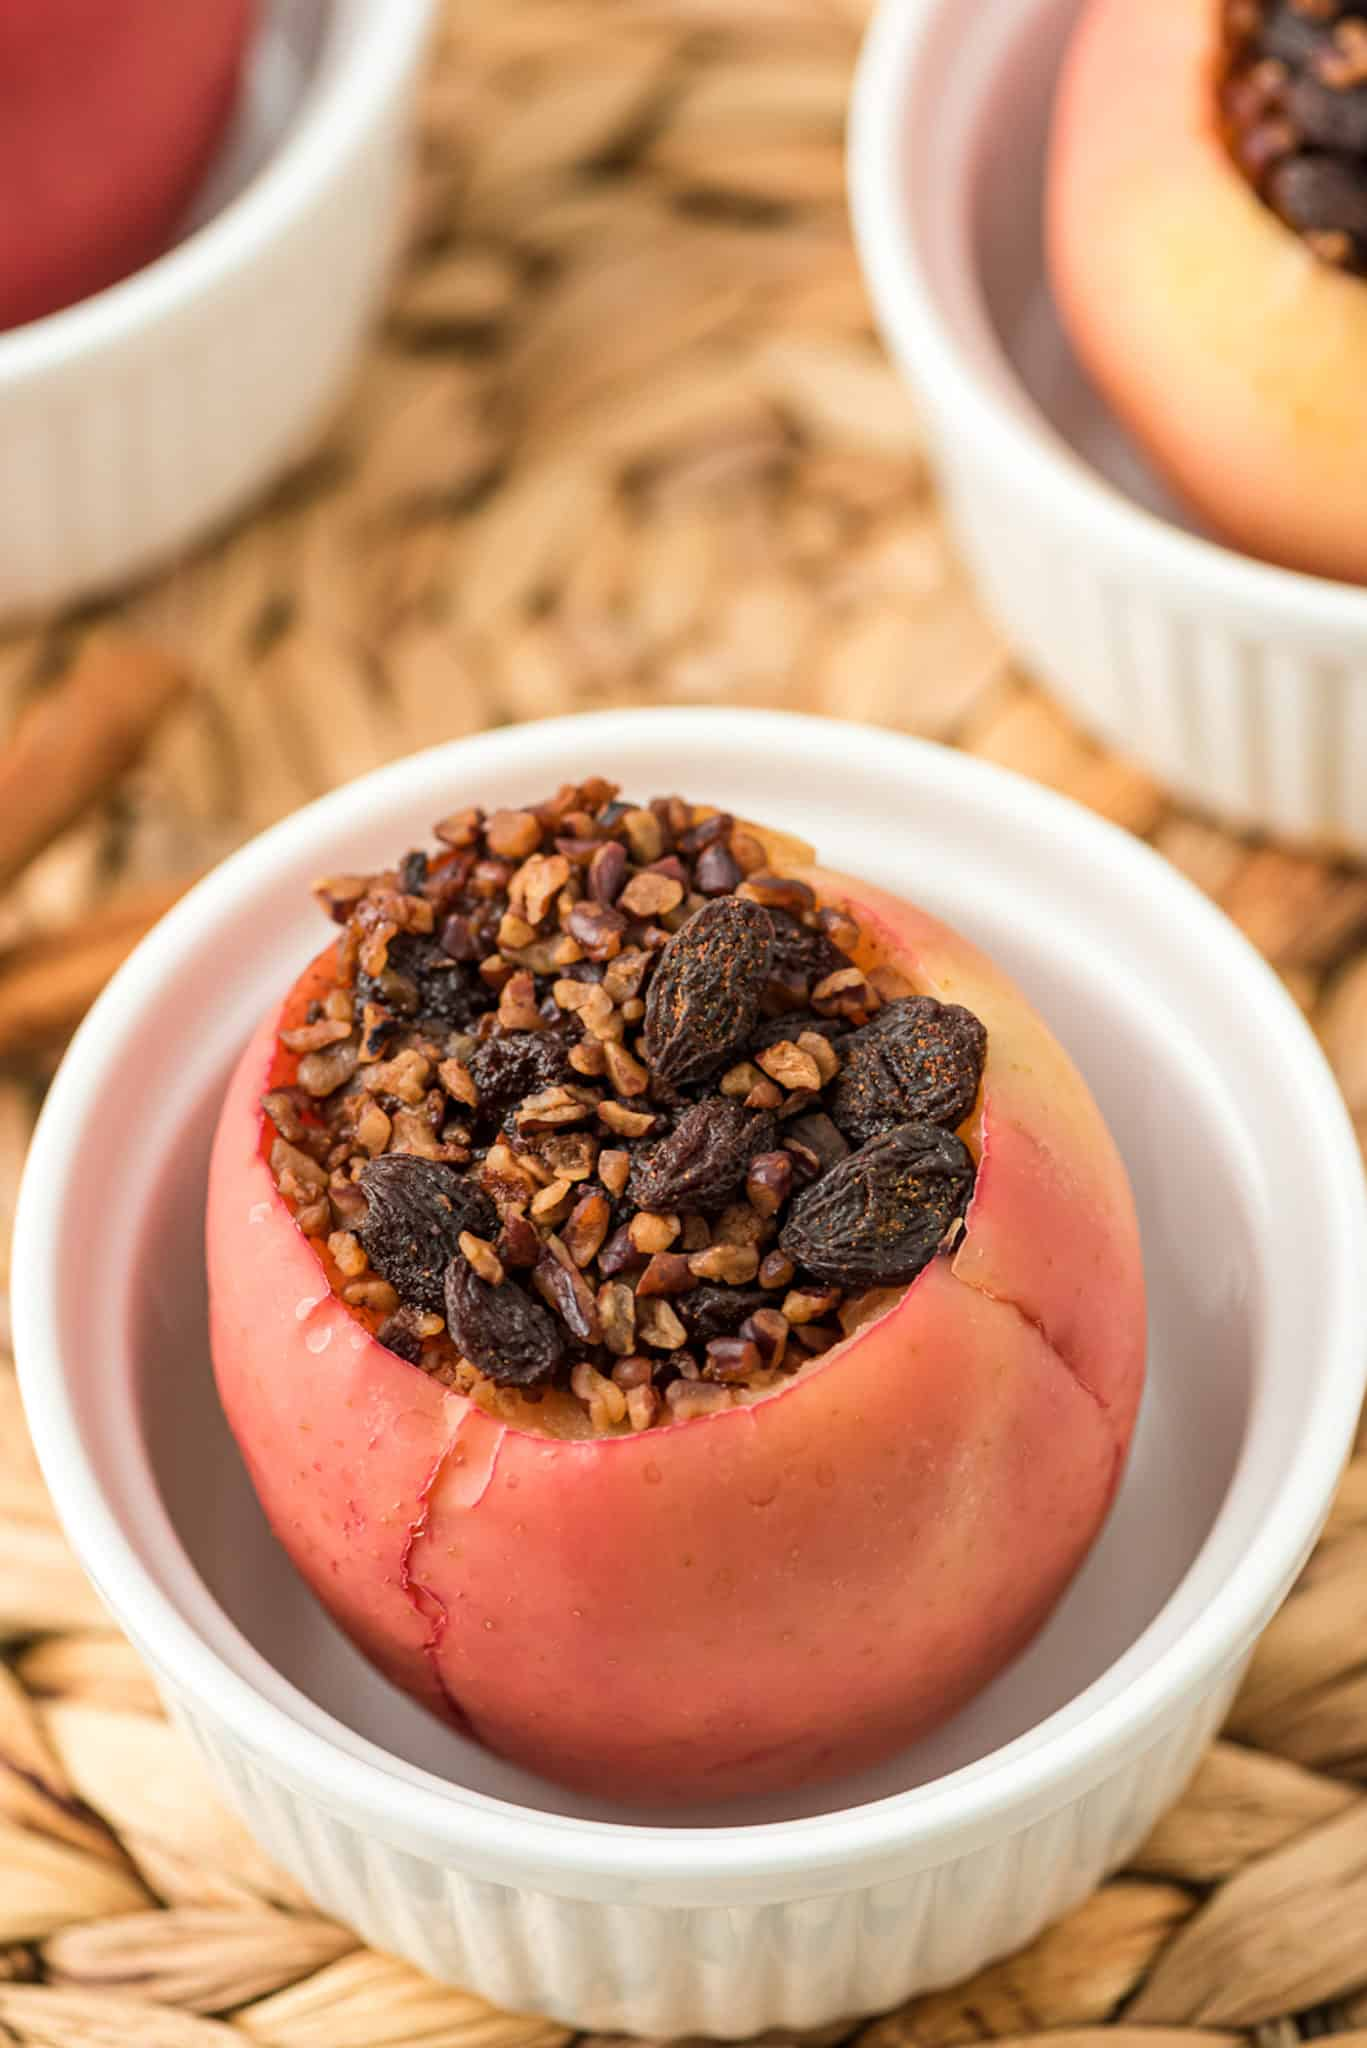 baked apple stuffed with raisins and nuts mixture